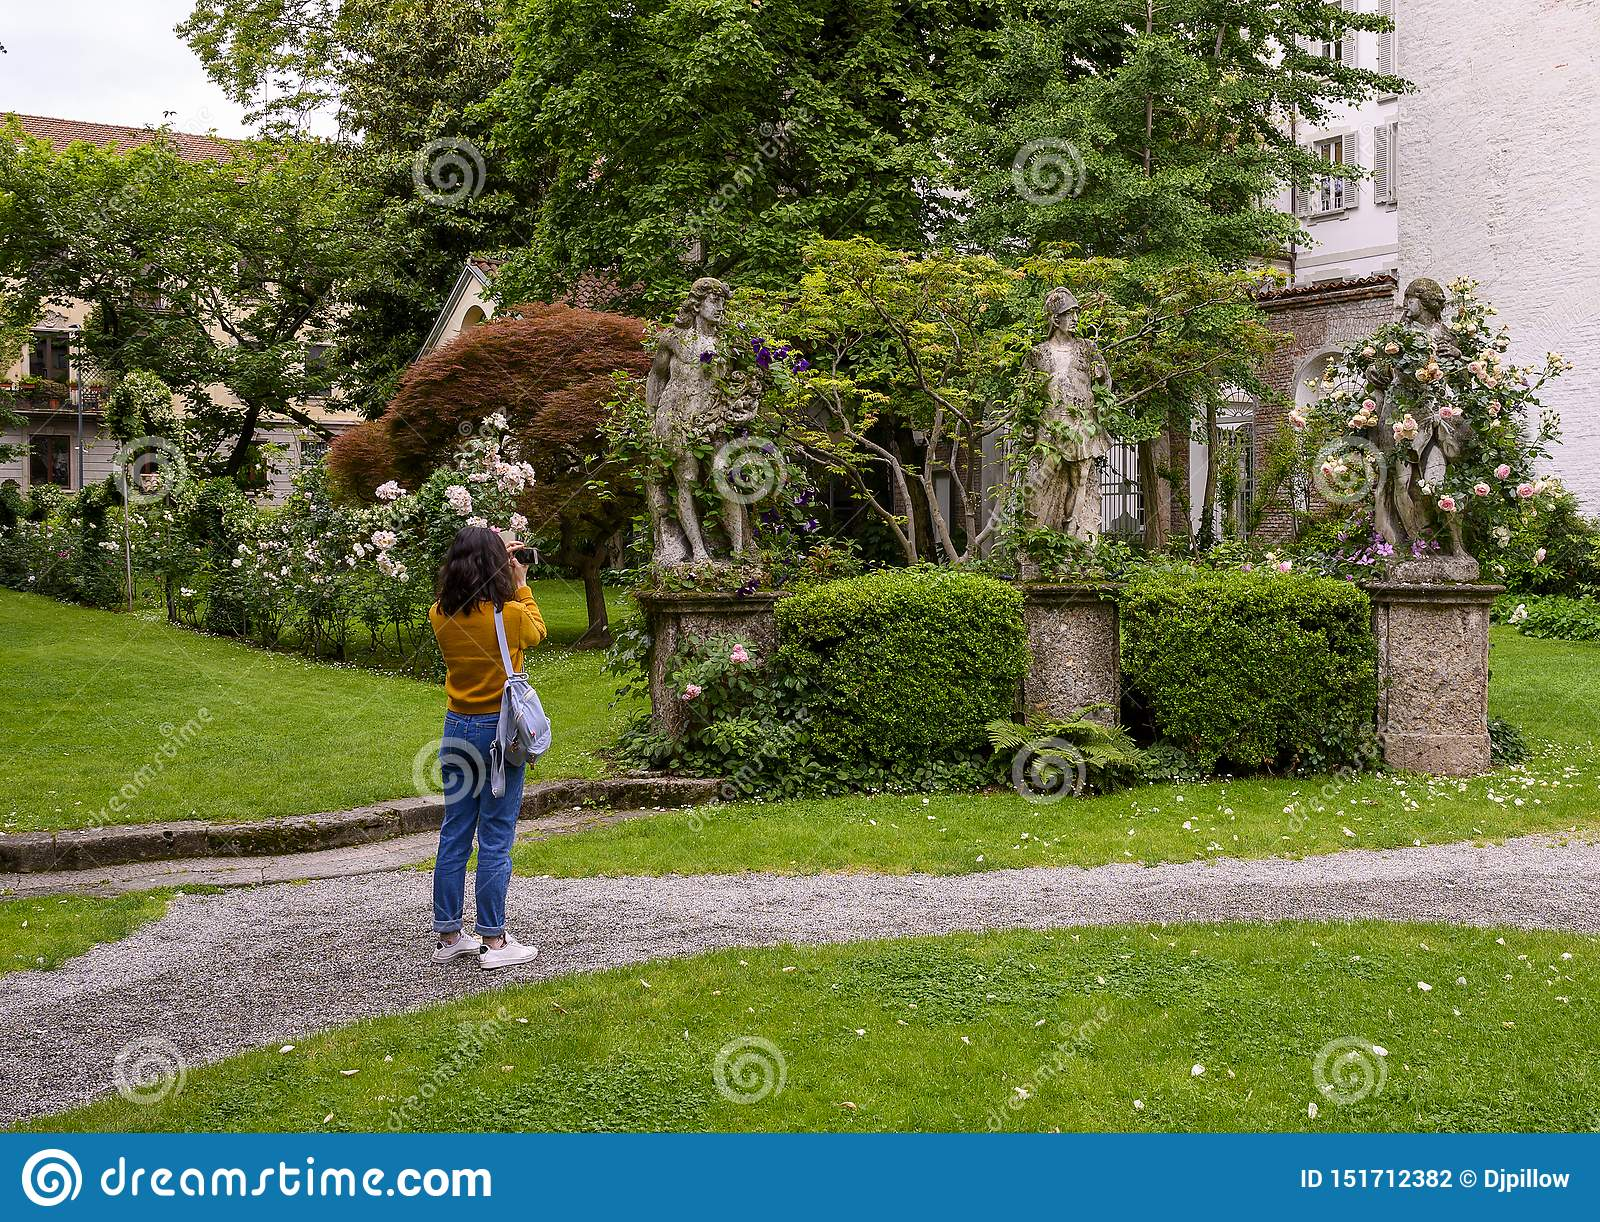 Tourist Photographing Sculptures In The Garden Of The Atellani